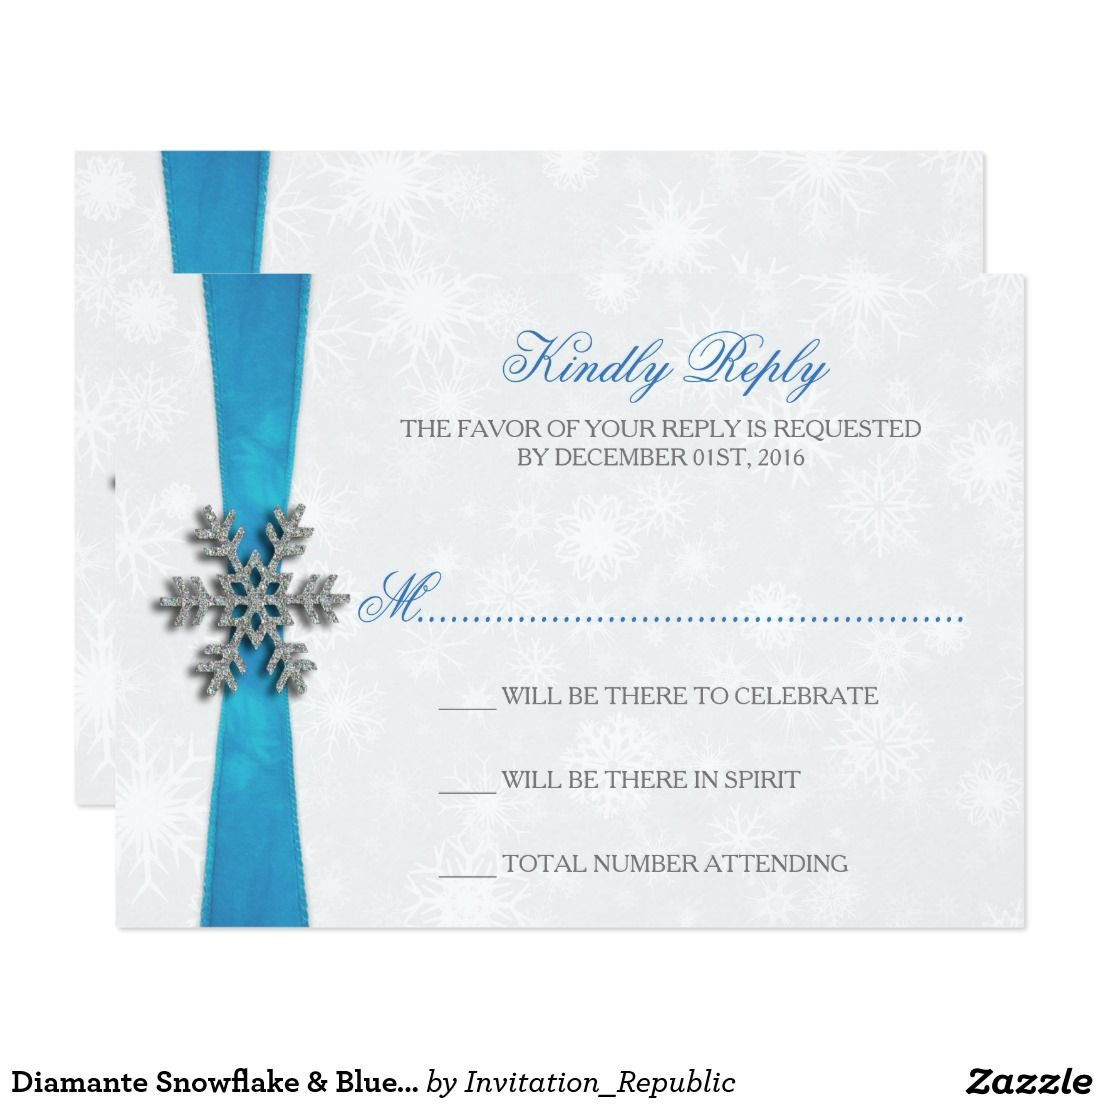 Diamante Snowflake & Blue Ribbon Winter Wedding Card